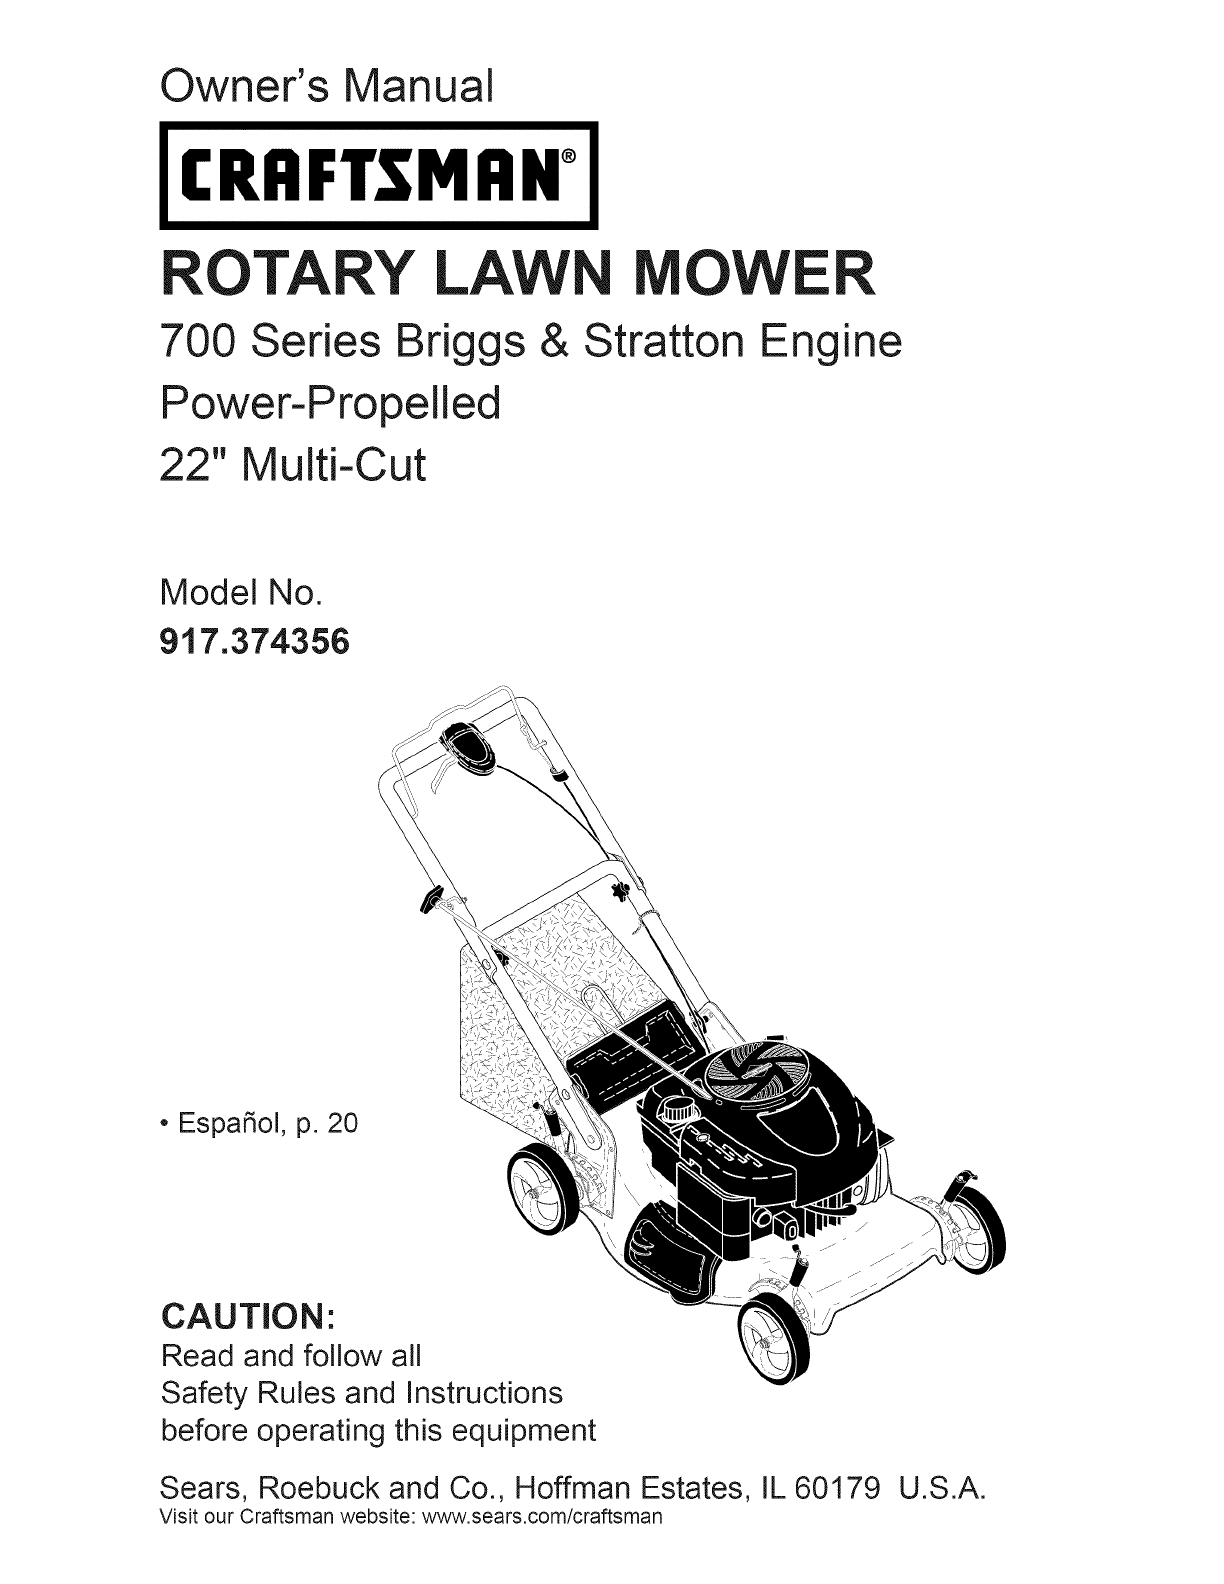 craftsman lawn mower 917.374356 user guide | manualsonline, Wiring diagram